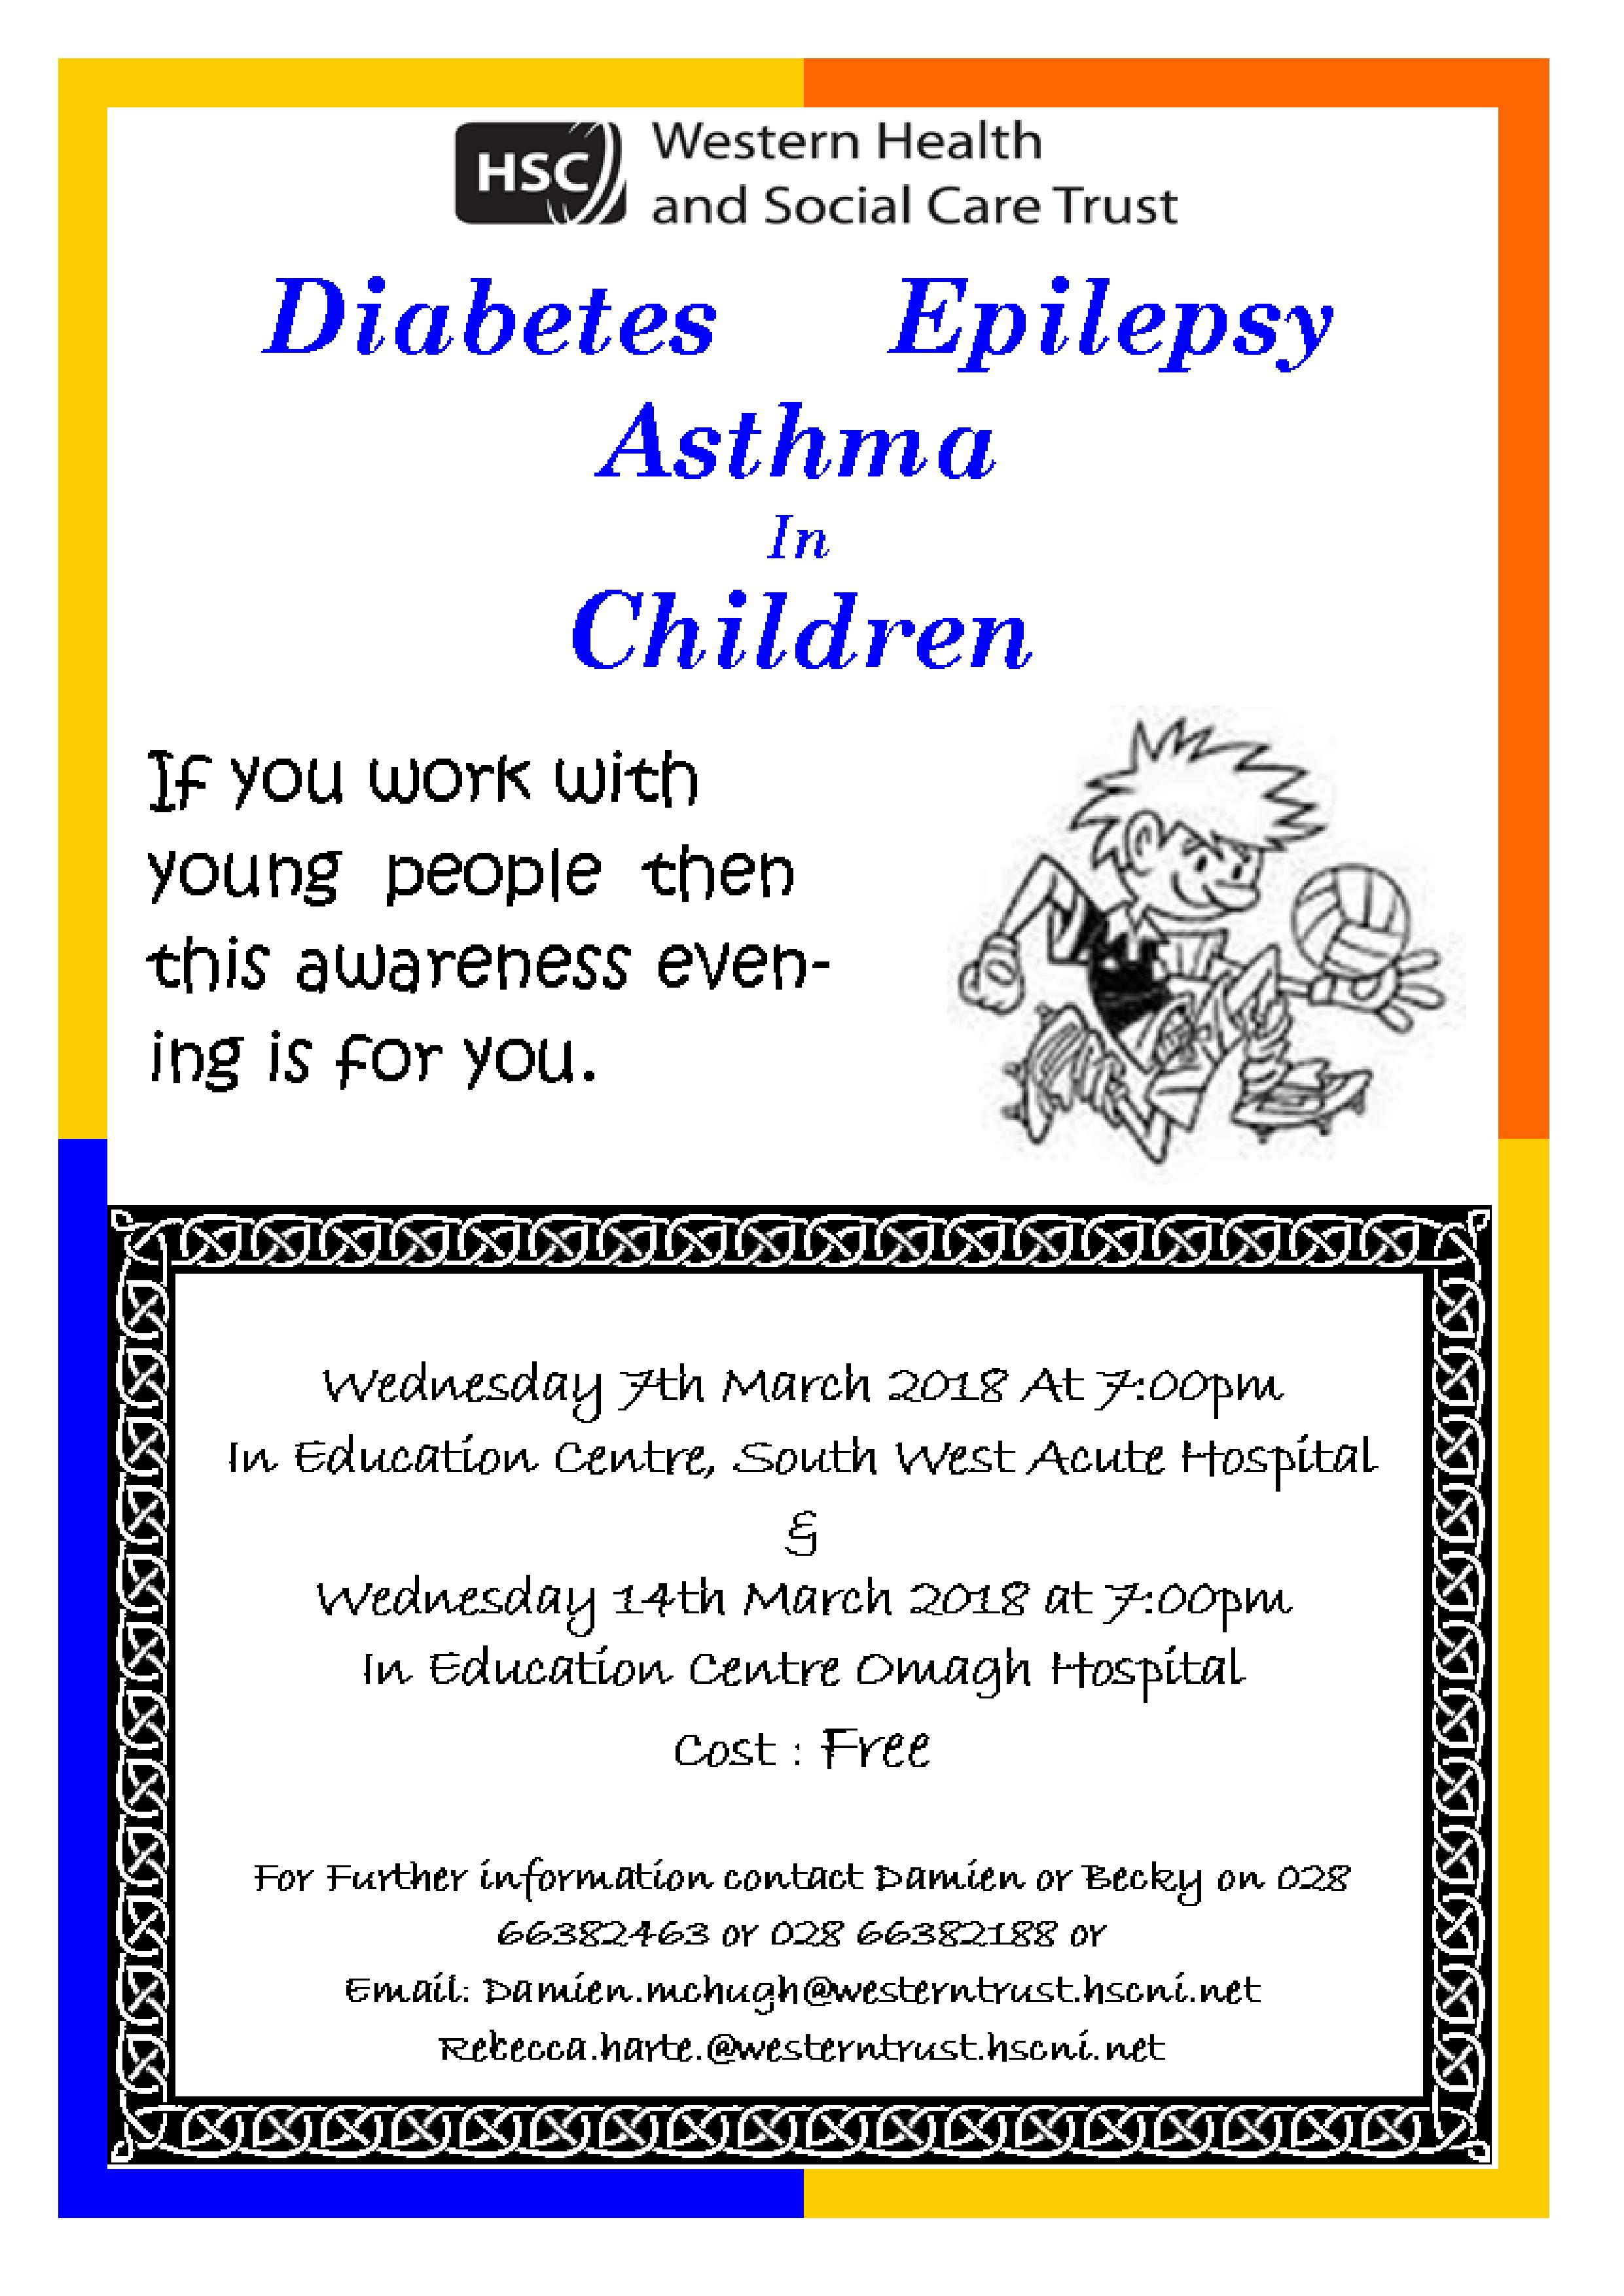 Awareness Evening on Diabetes Asthma and Epilepsy in children